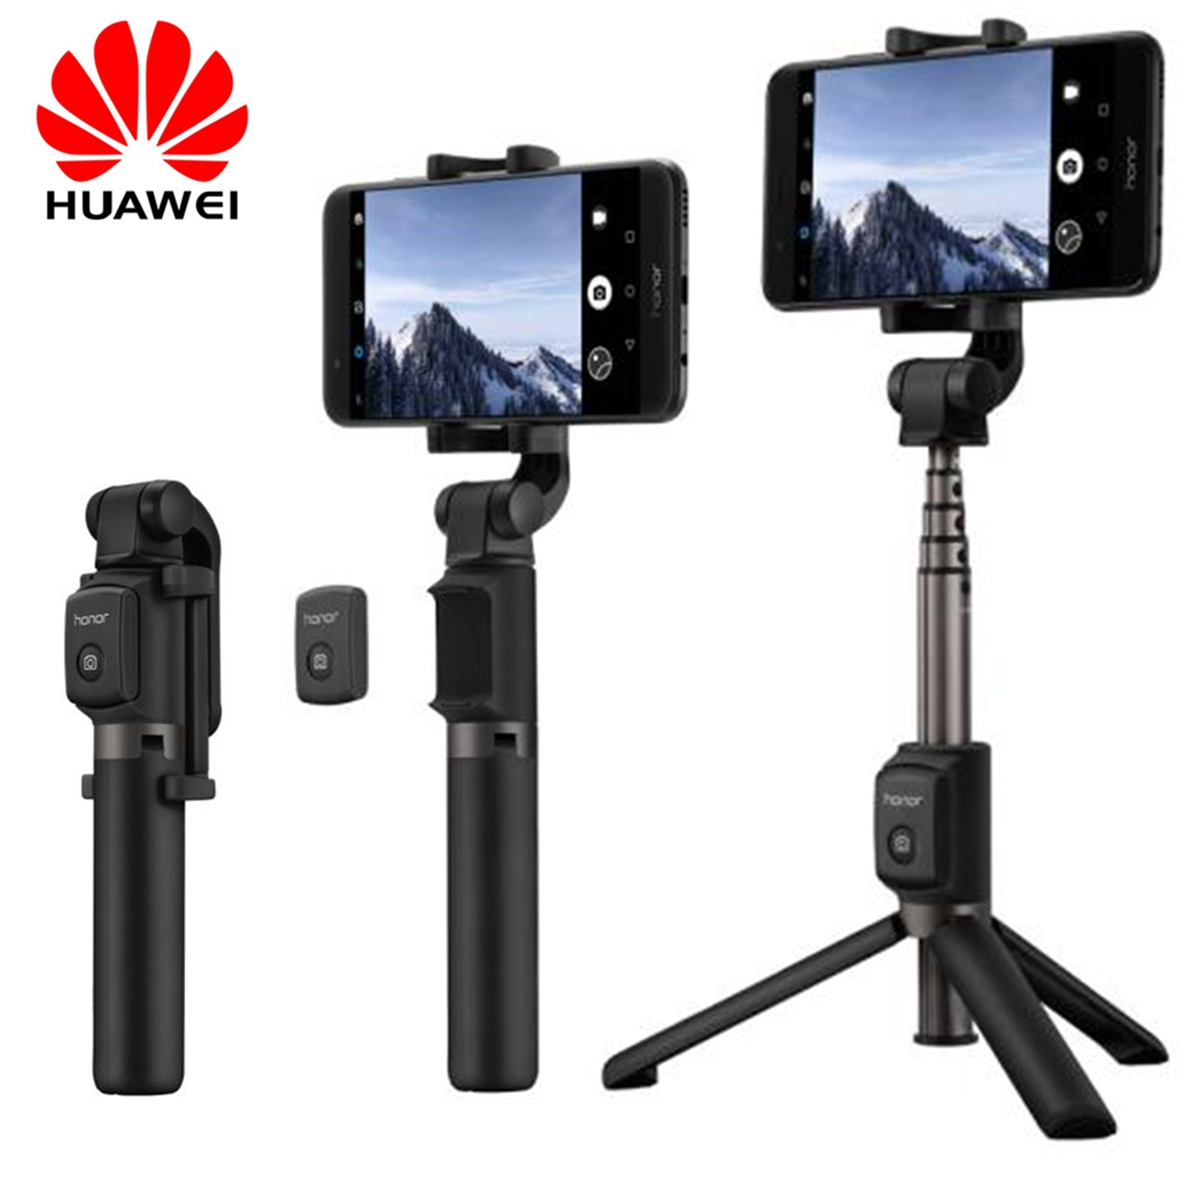 Original Huawei 360 Degree Rotation Extendable Portable Mini Tripod Wireless Bluetooth Remote Phone Selfie Stick for iOS Android